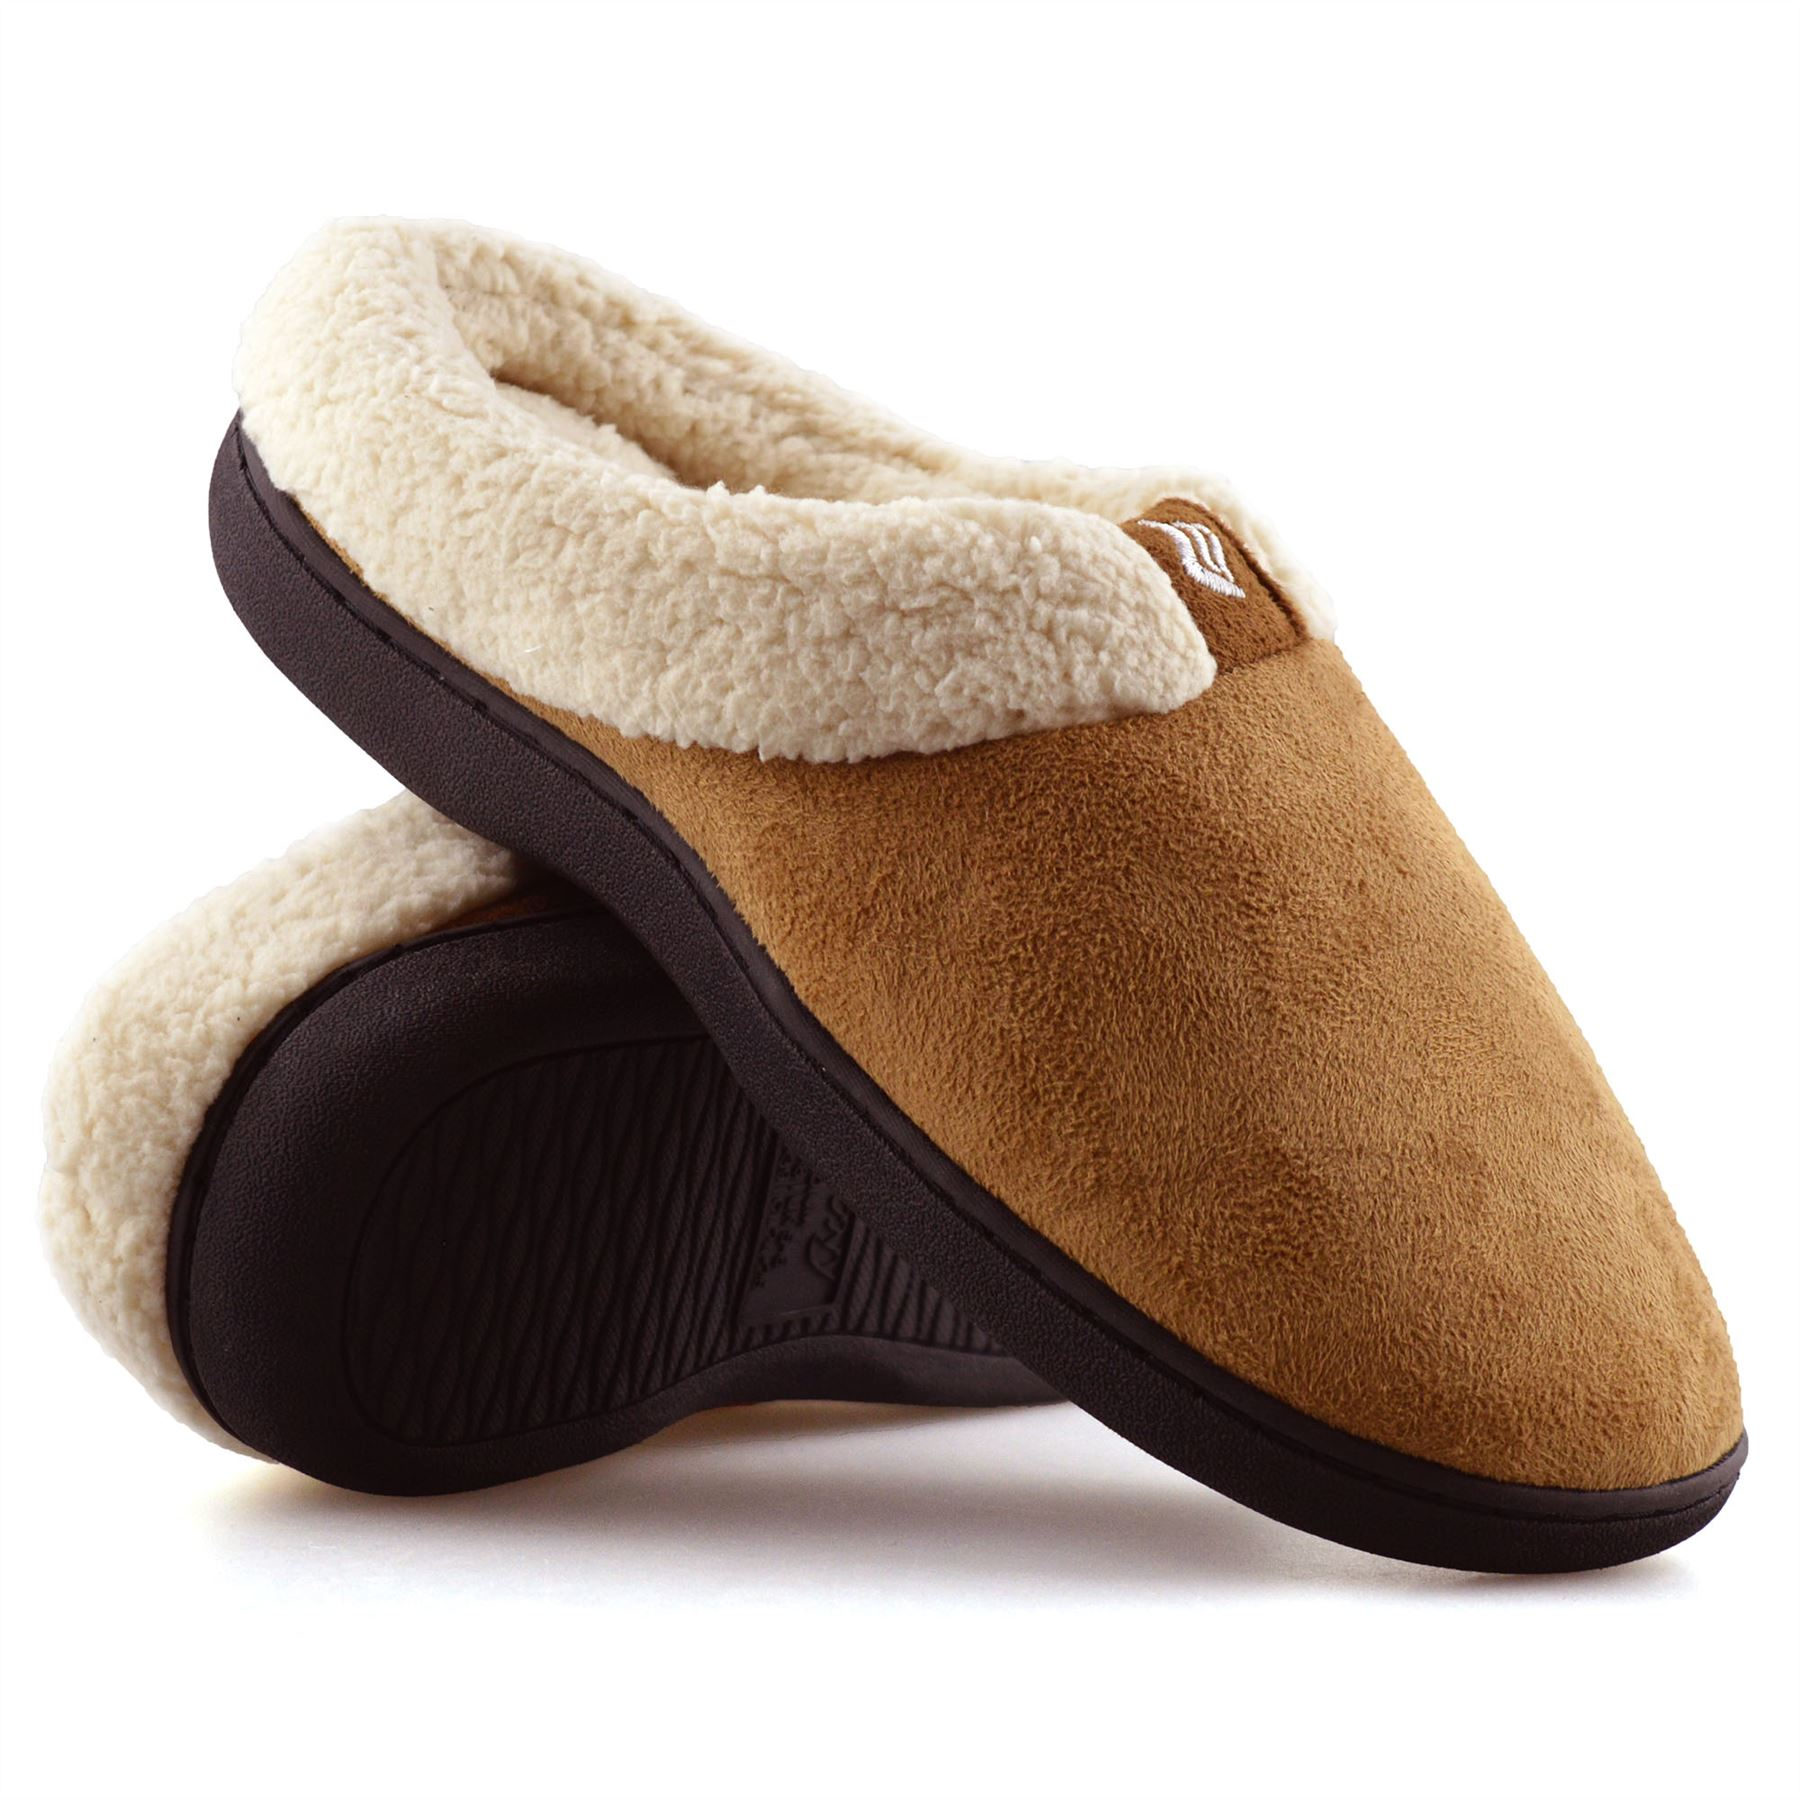 Details zu Ladies Womens Memory Foam Warm Faux Suede Slippers Slip On Clog Mules Shoes Size